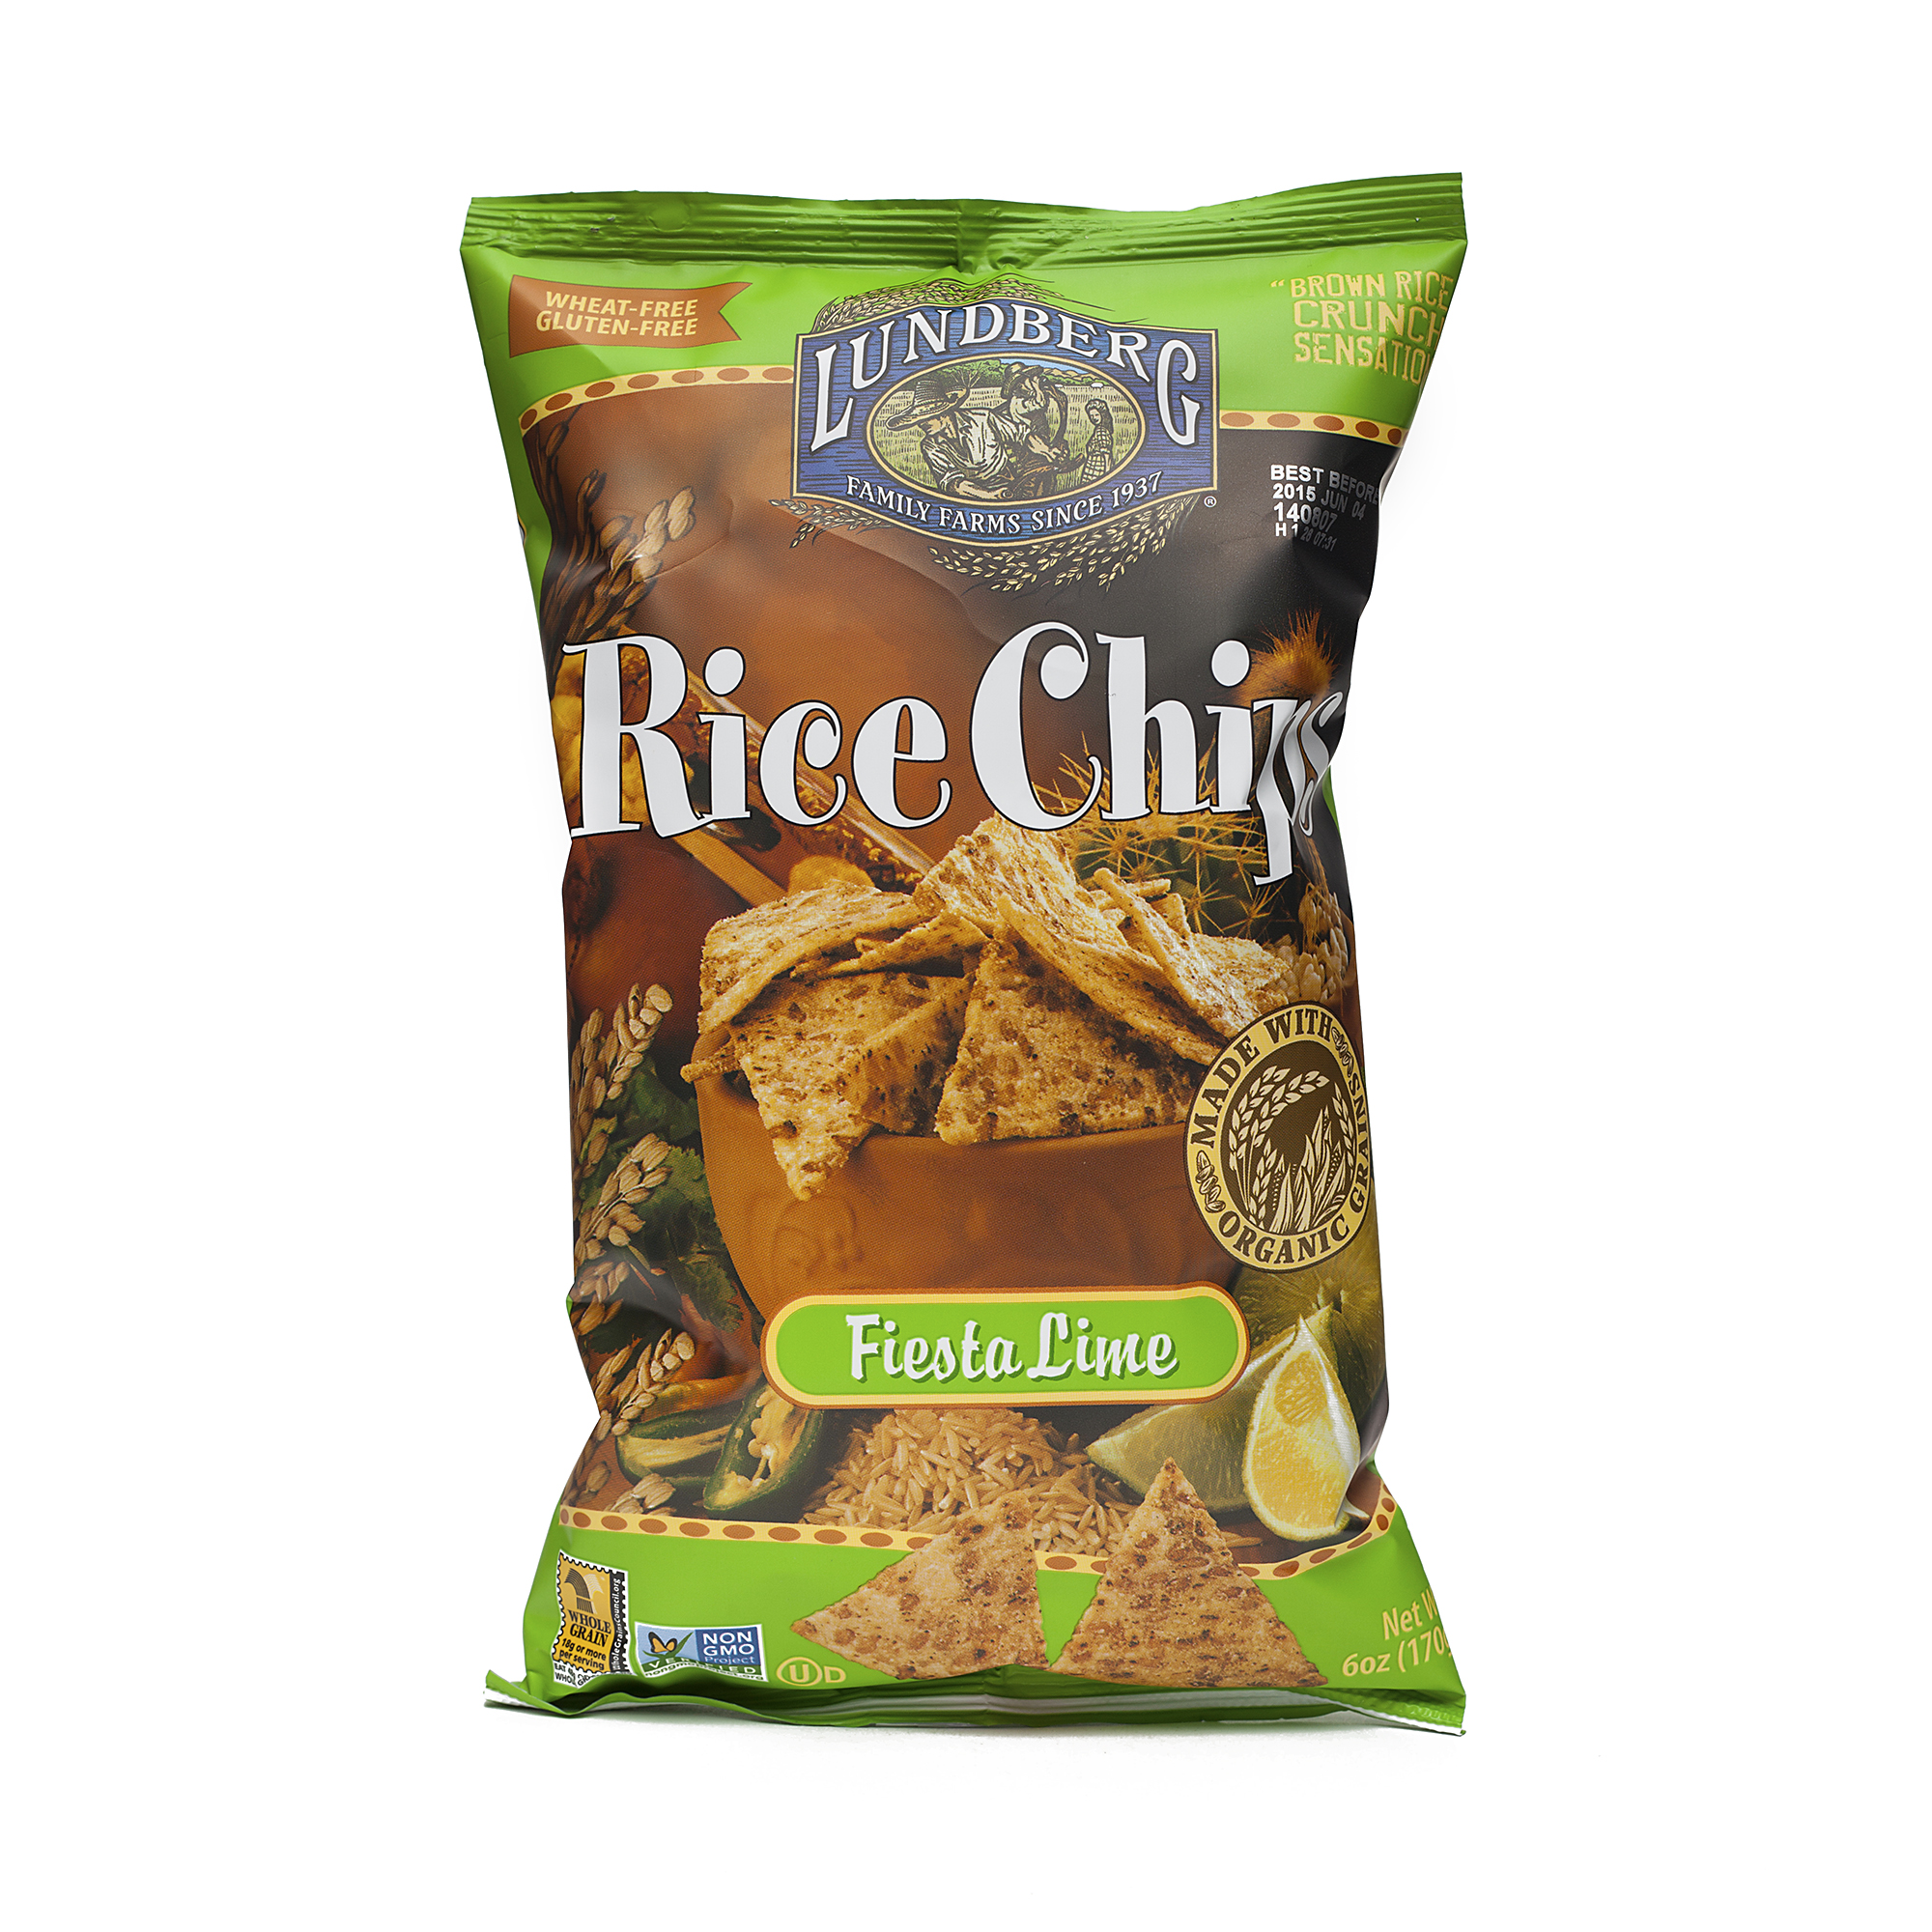 Fiesta Lime Rice Chips by Lundberg Farms - Thrive Market